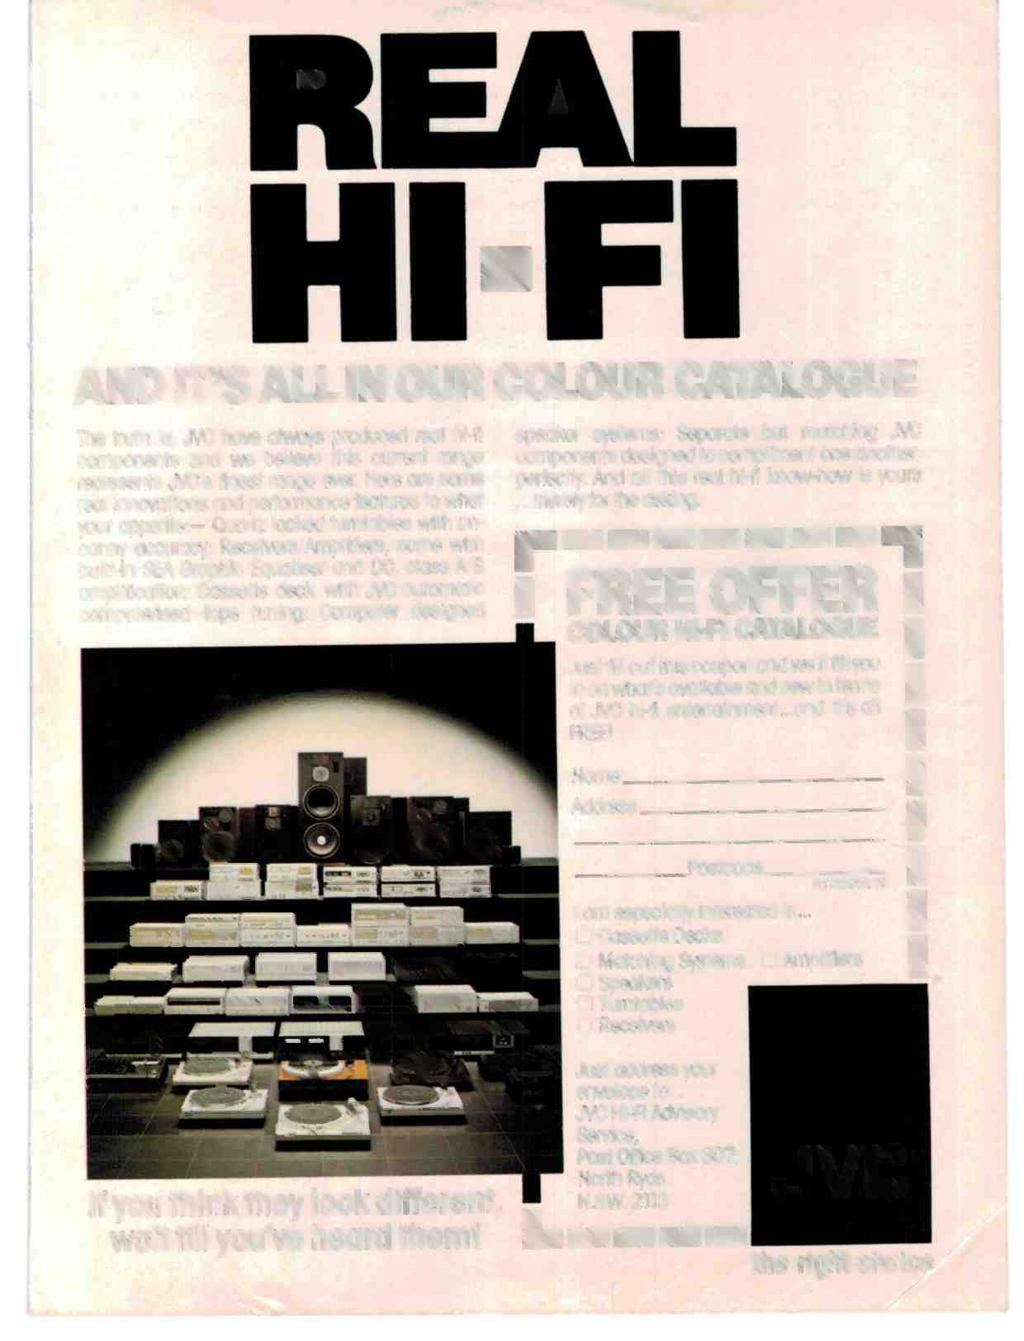 AND IT'S ALL IN OUR COLOUR CATALOGUE The truth is, JVC have always produced real hi-fi components and we believe this current range represents JVC's finest range ever.